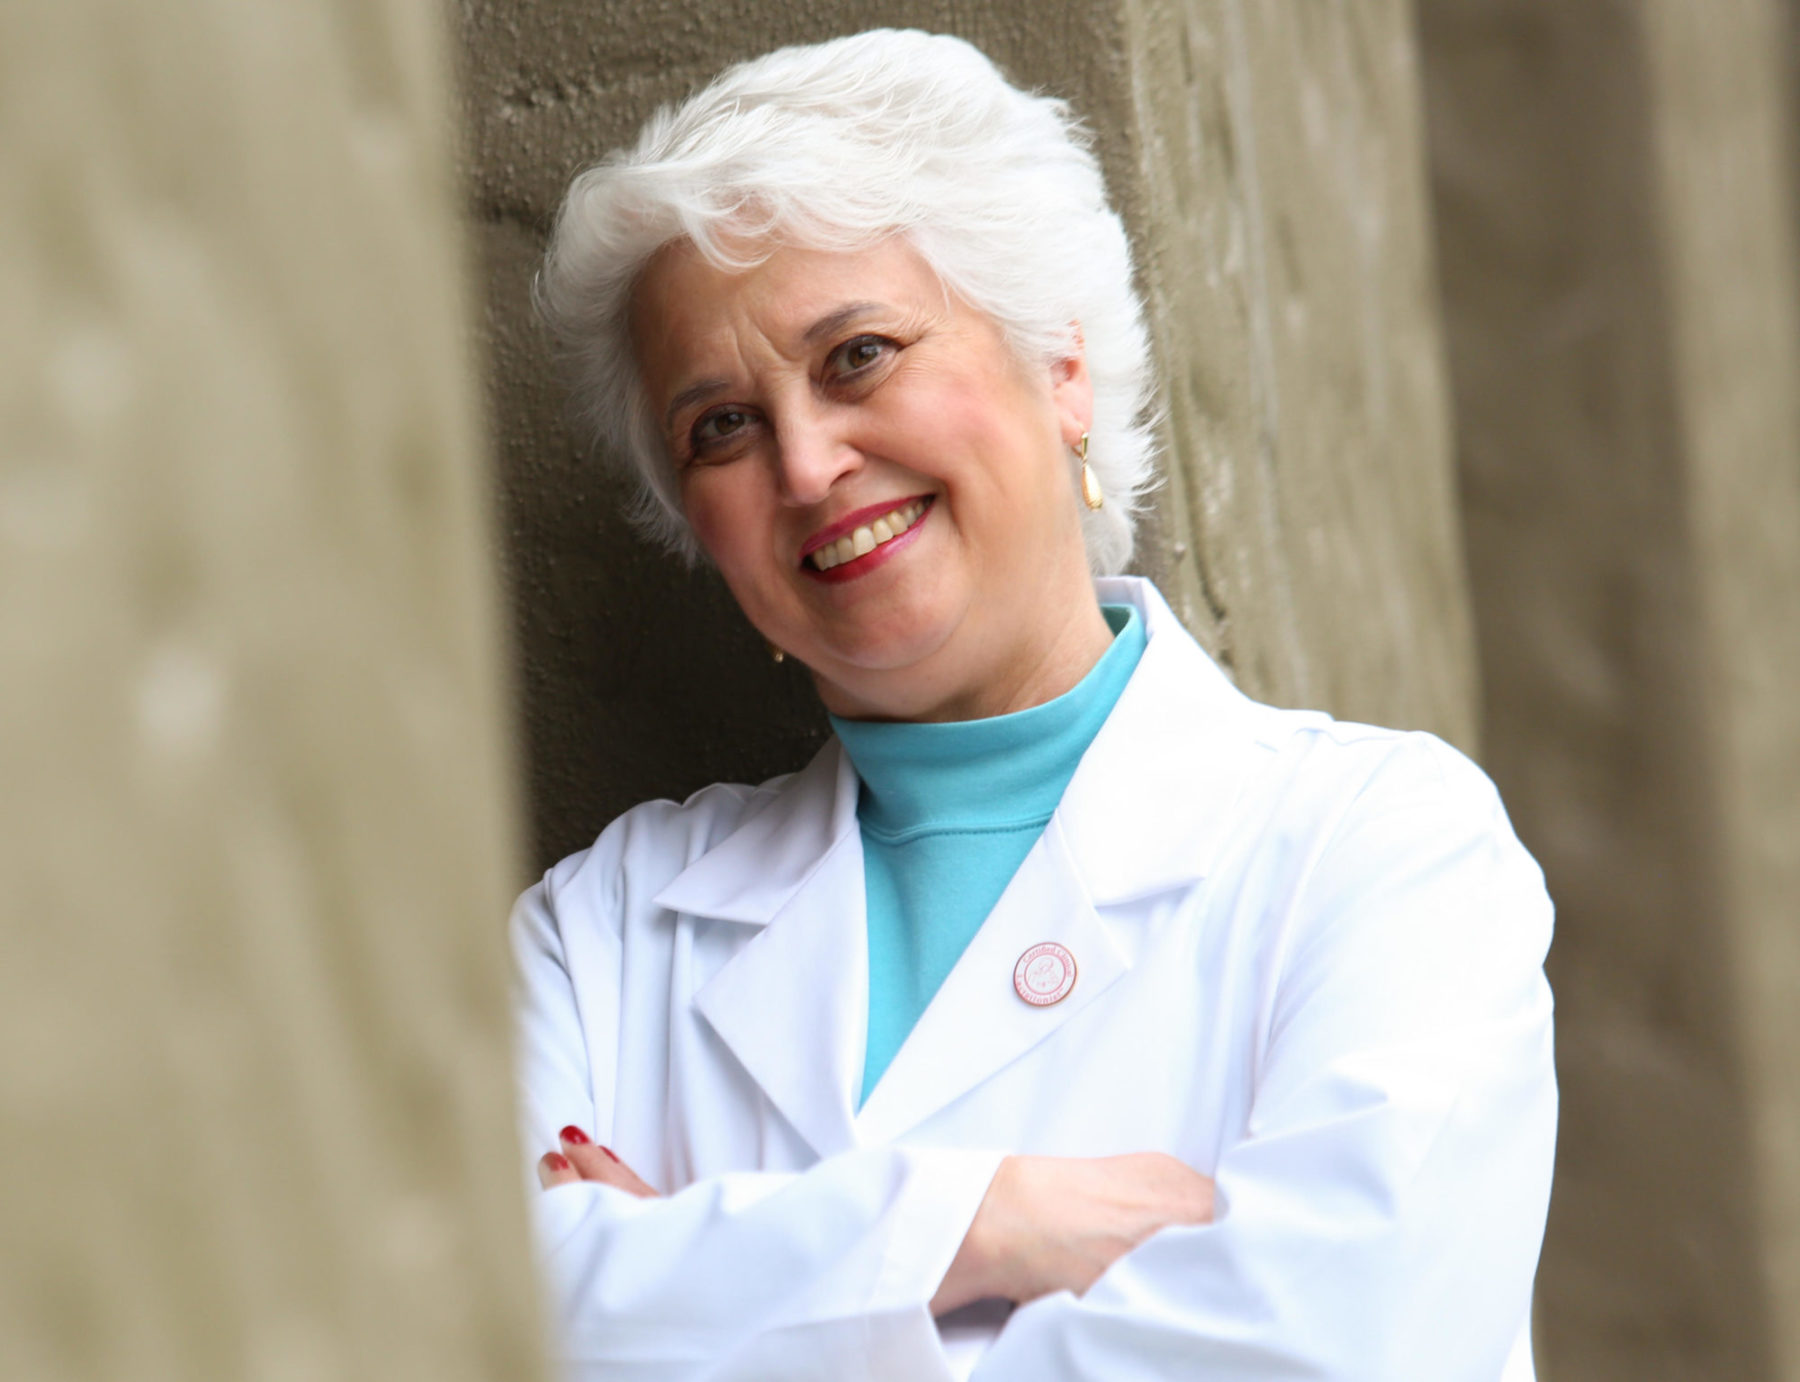 Marie Biancuzzo shares her thoughts and experiences on why she loves being a nurse.